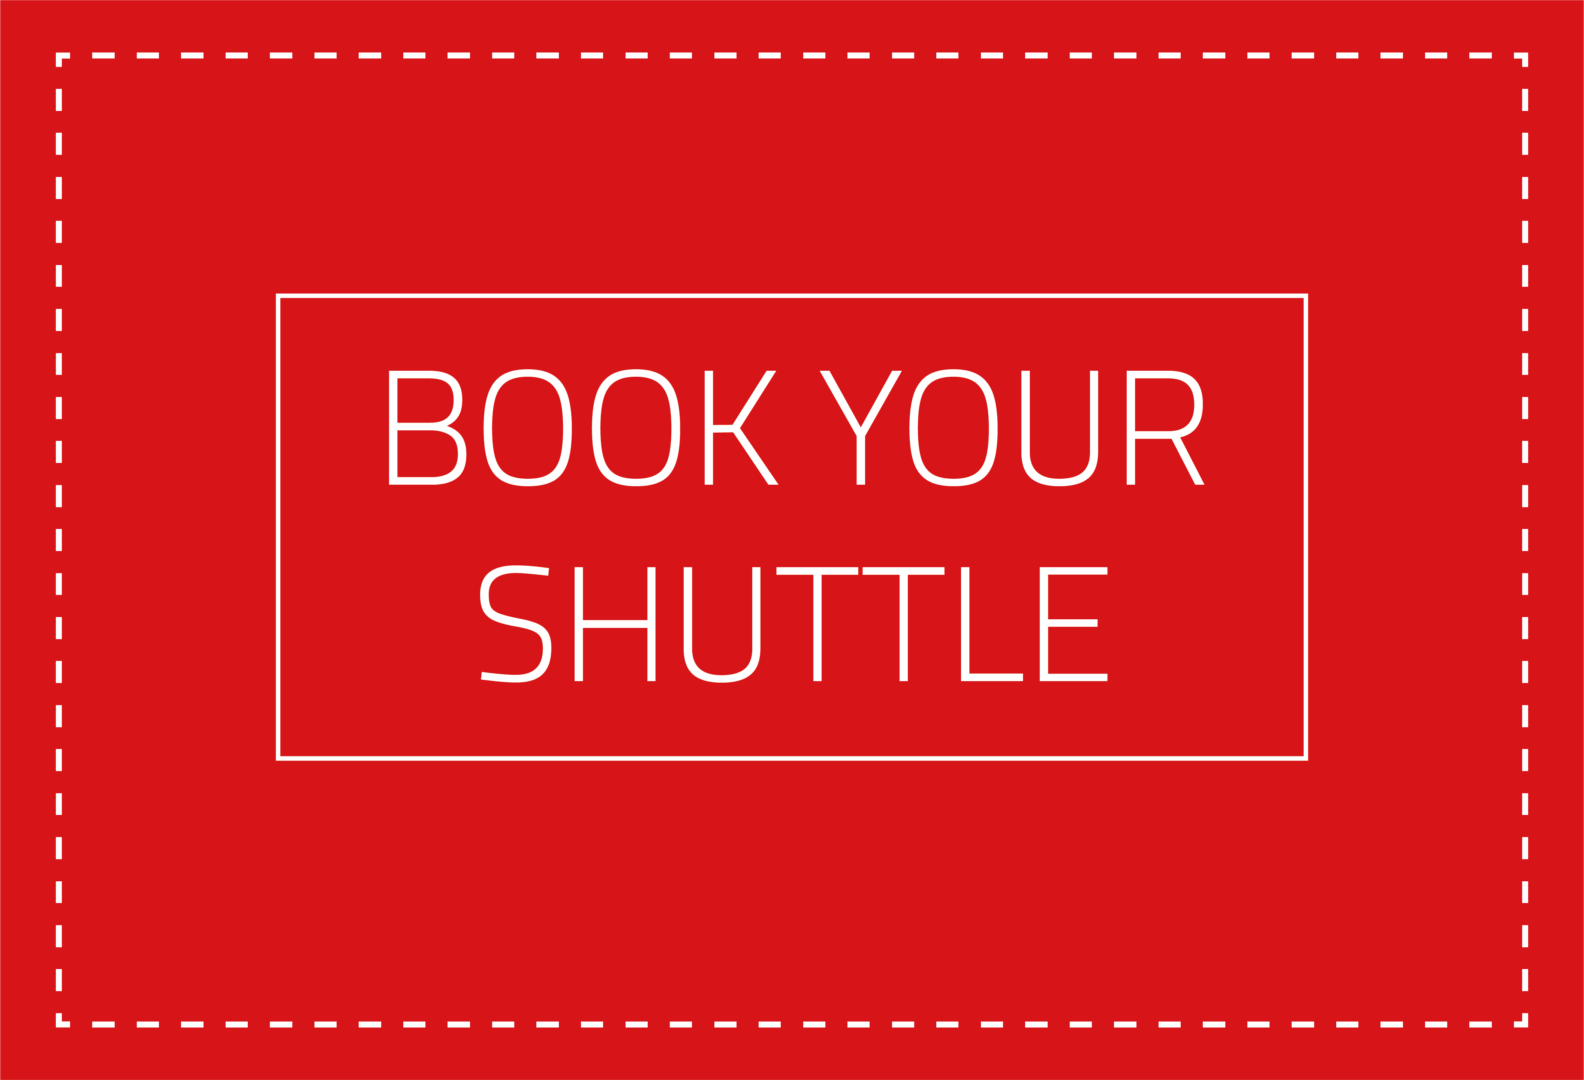 Shuttle Lyon Booking